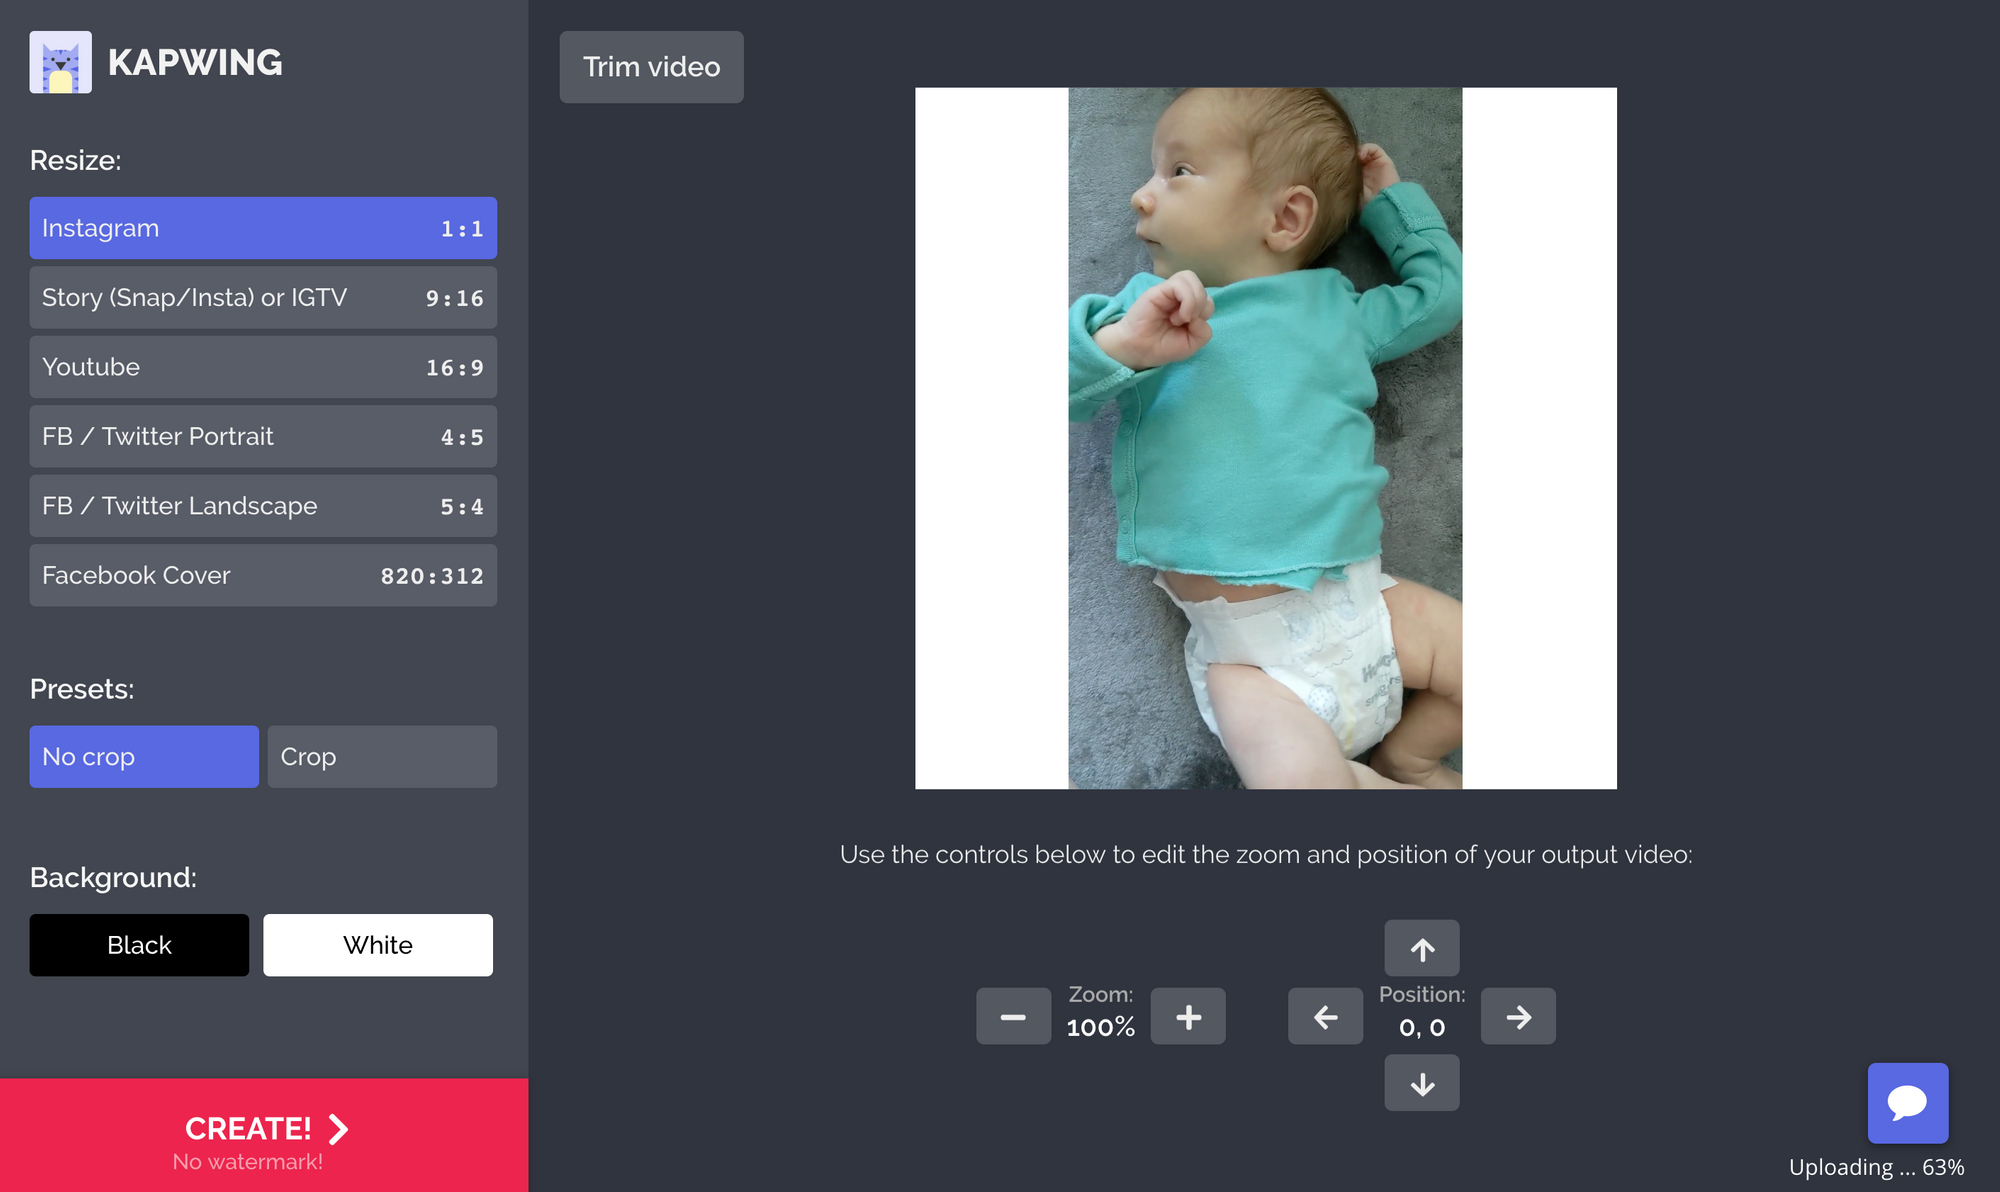 How to Post a Portrait Image or Video to Instagram Without Cropping